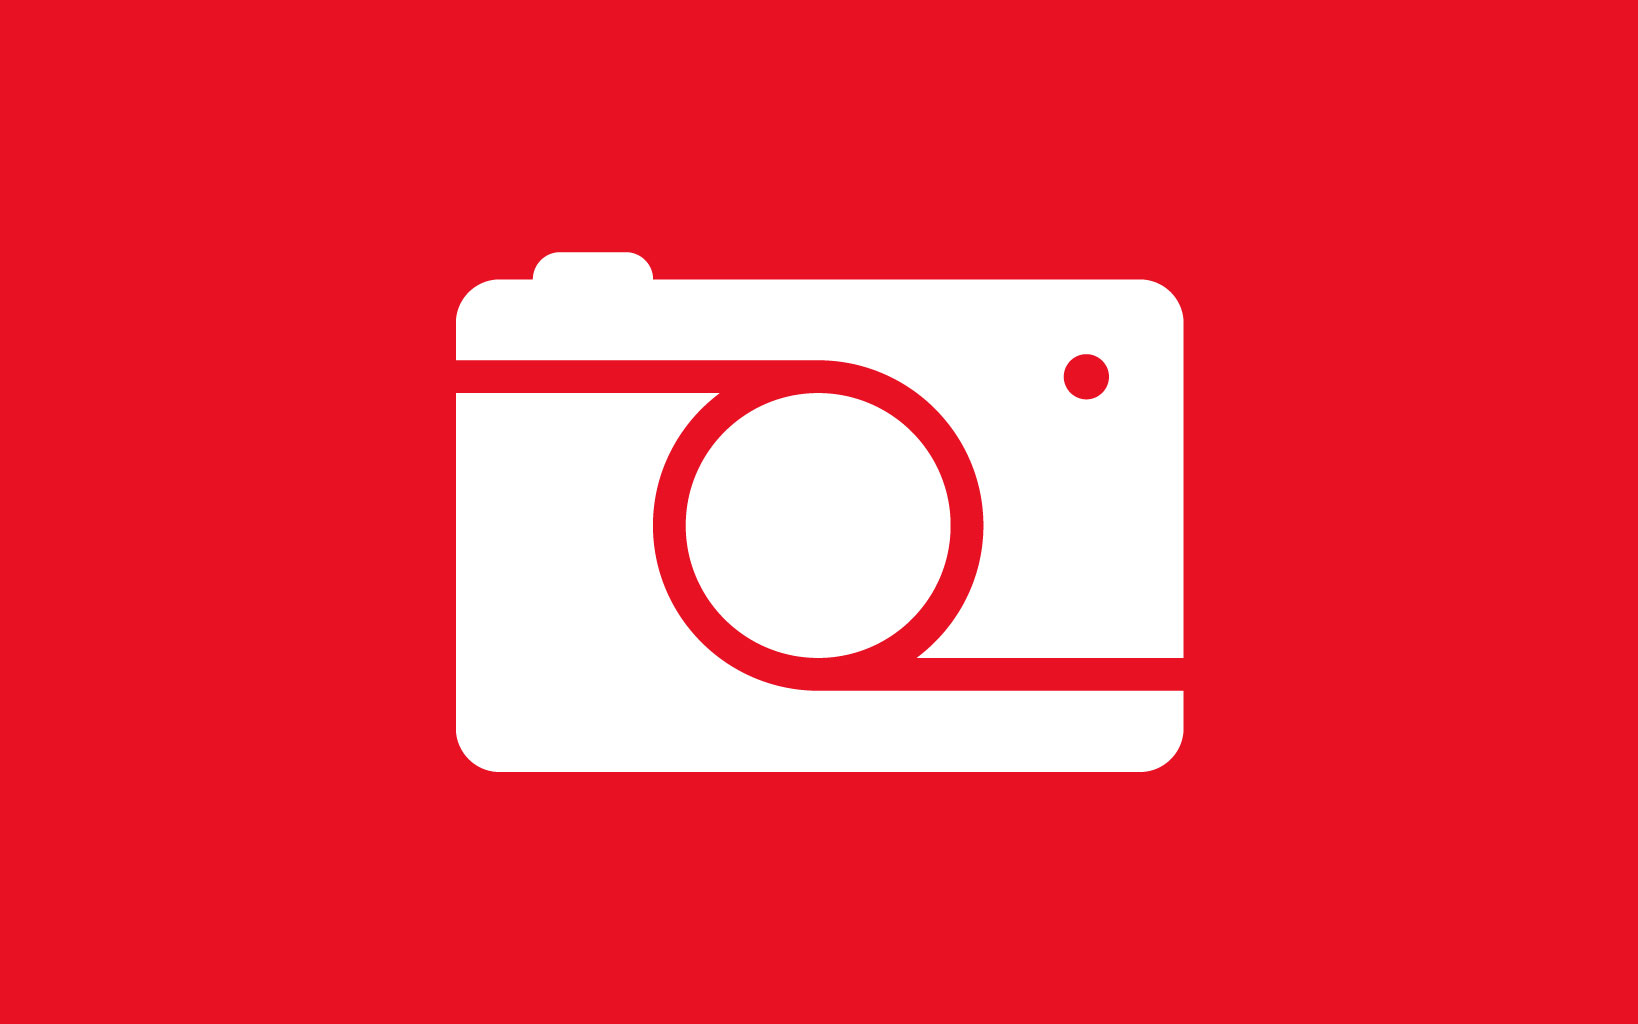 Microsoft Pix is designed to be a better camera app.